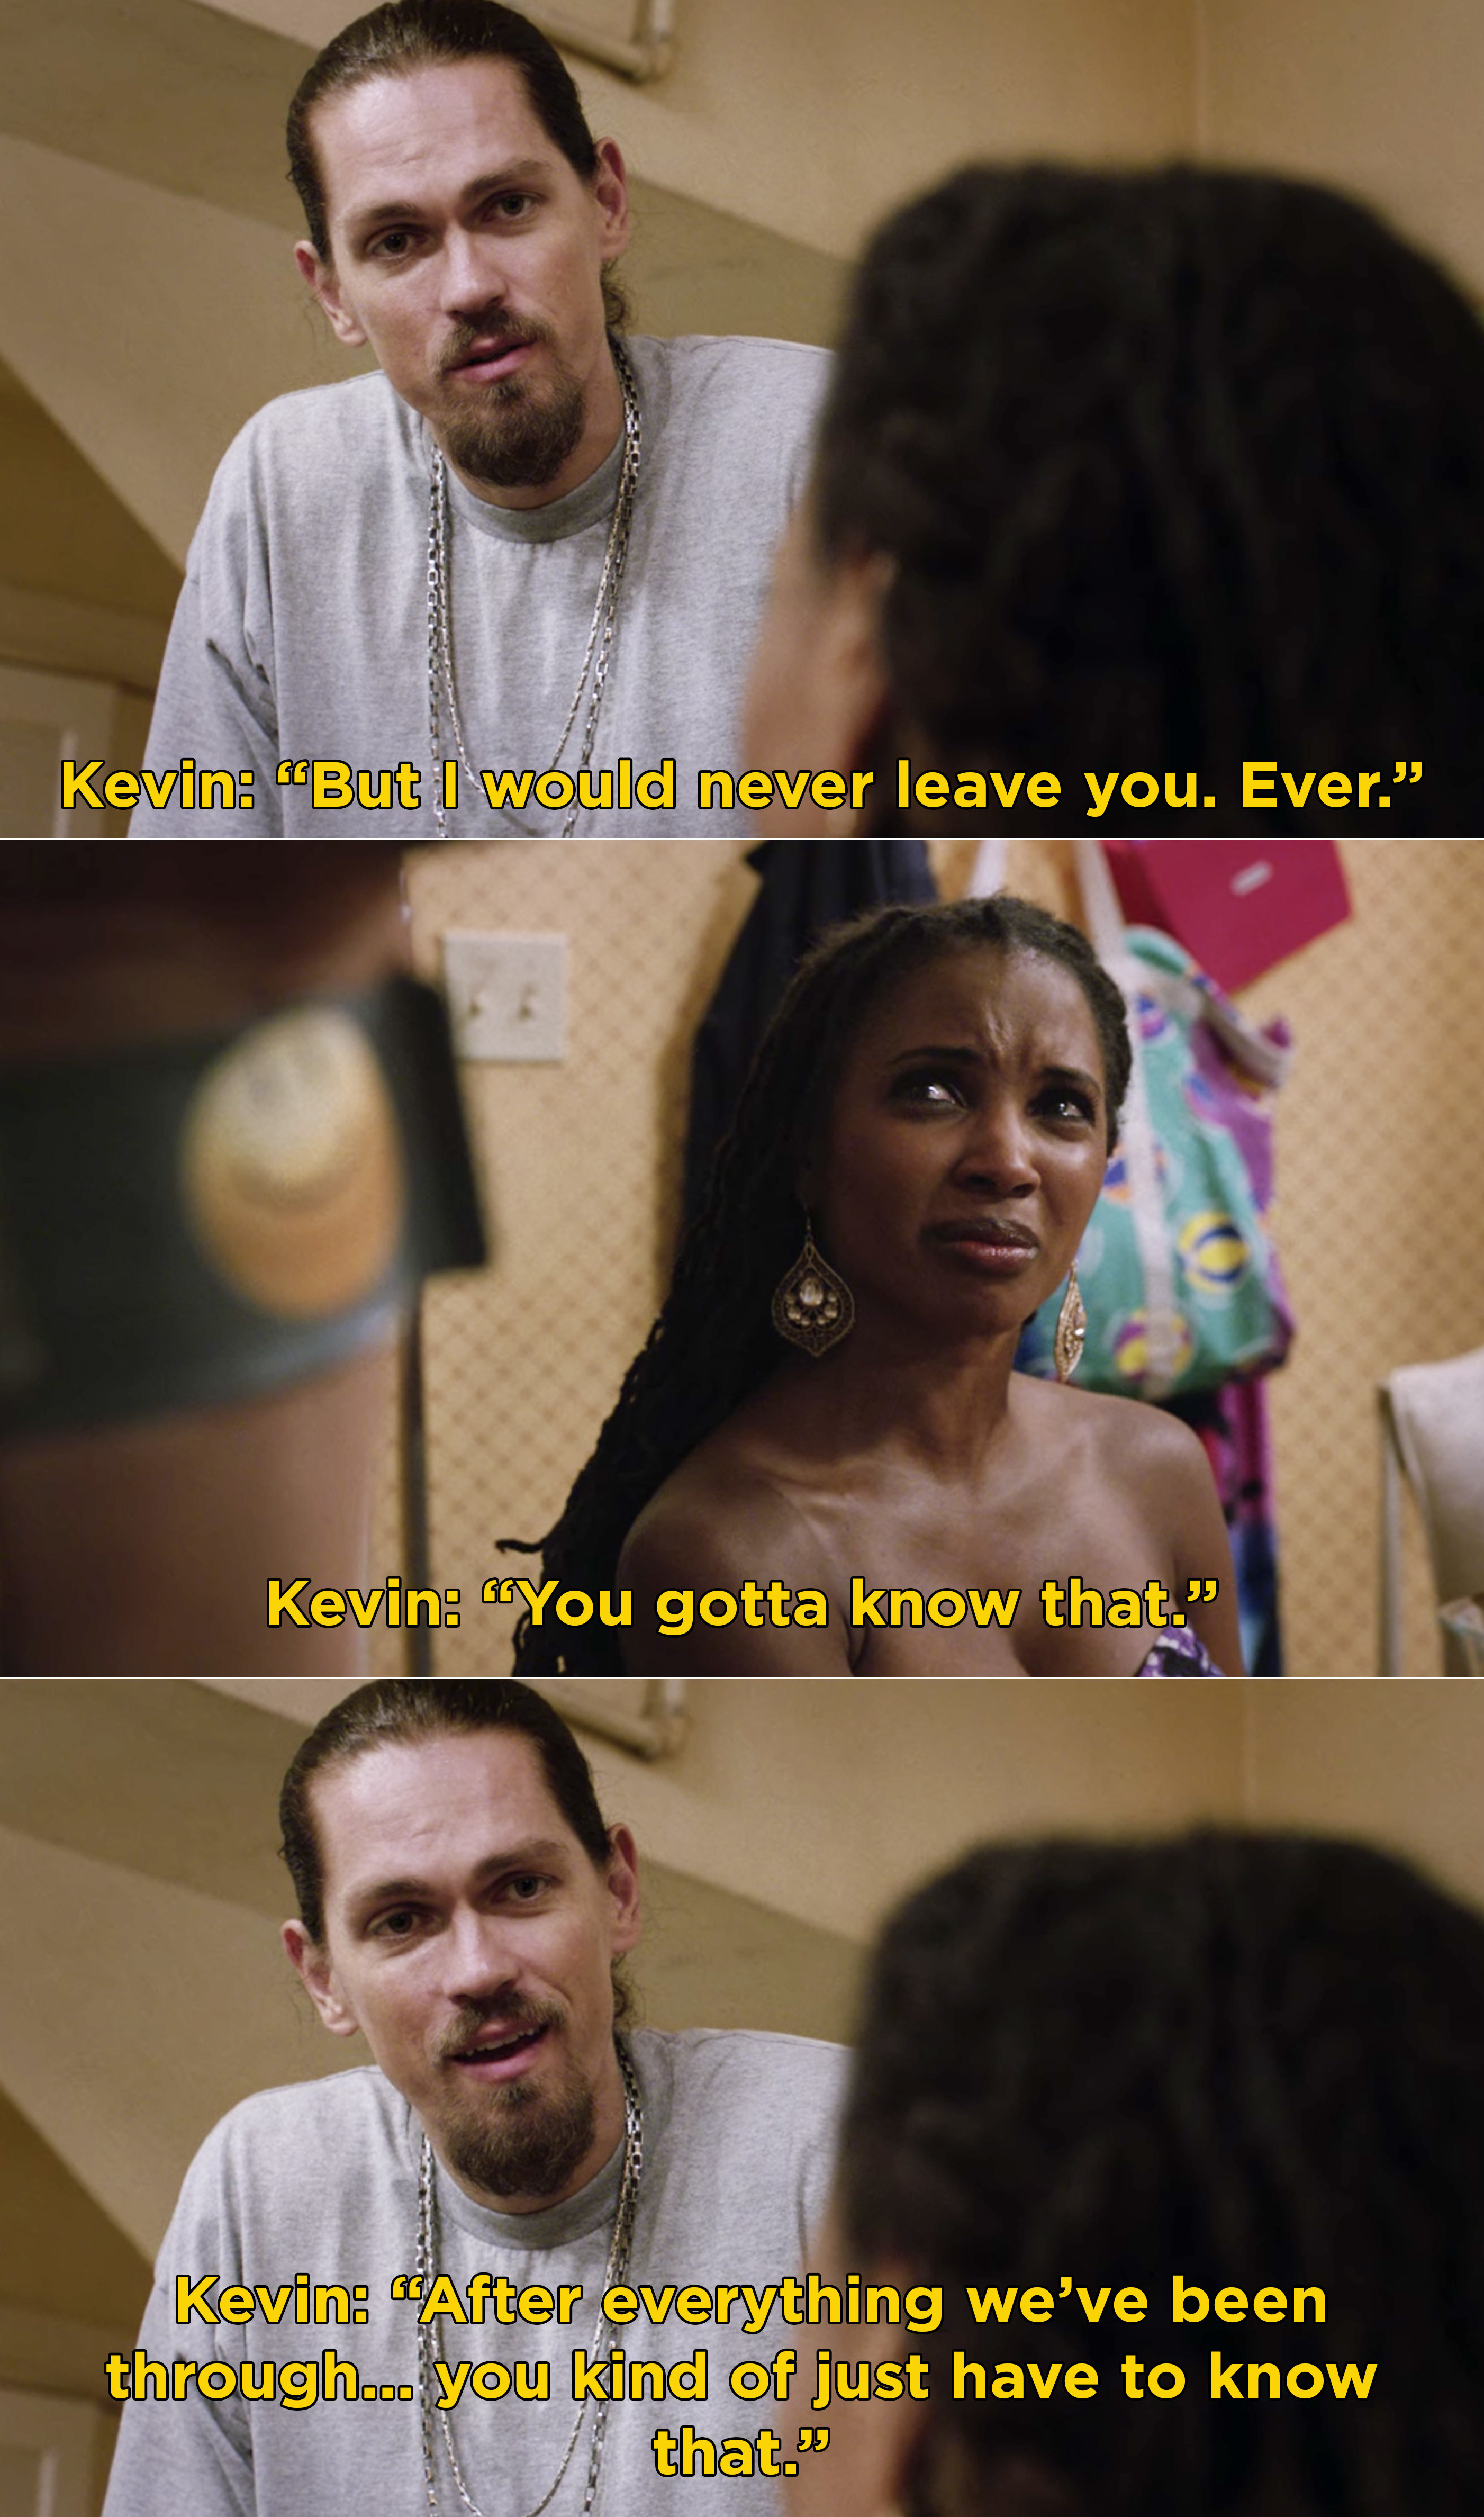 """Kevin telling Veronica, """"But I would never leave you ever. You gotta know that"""""""